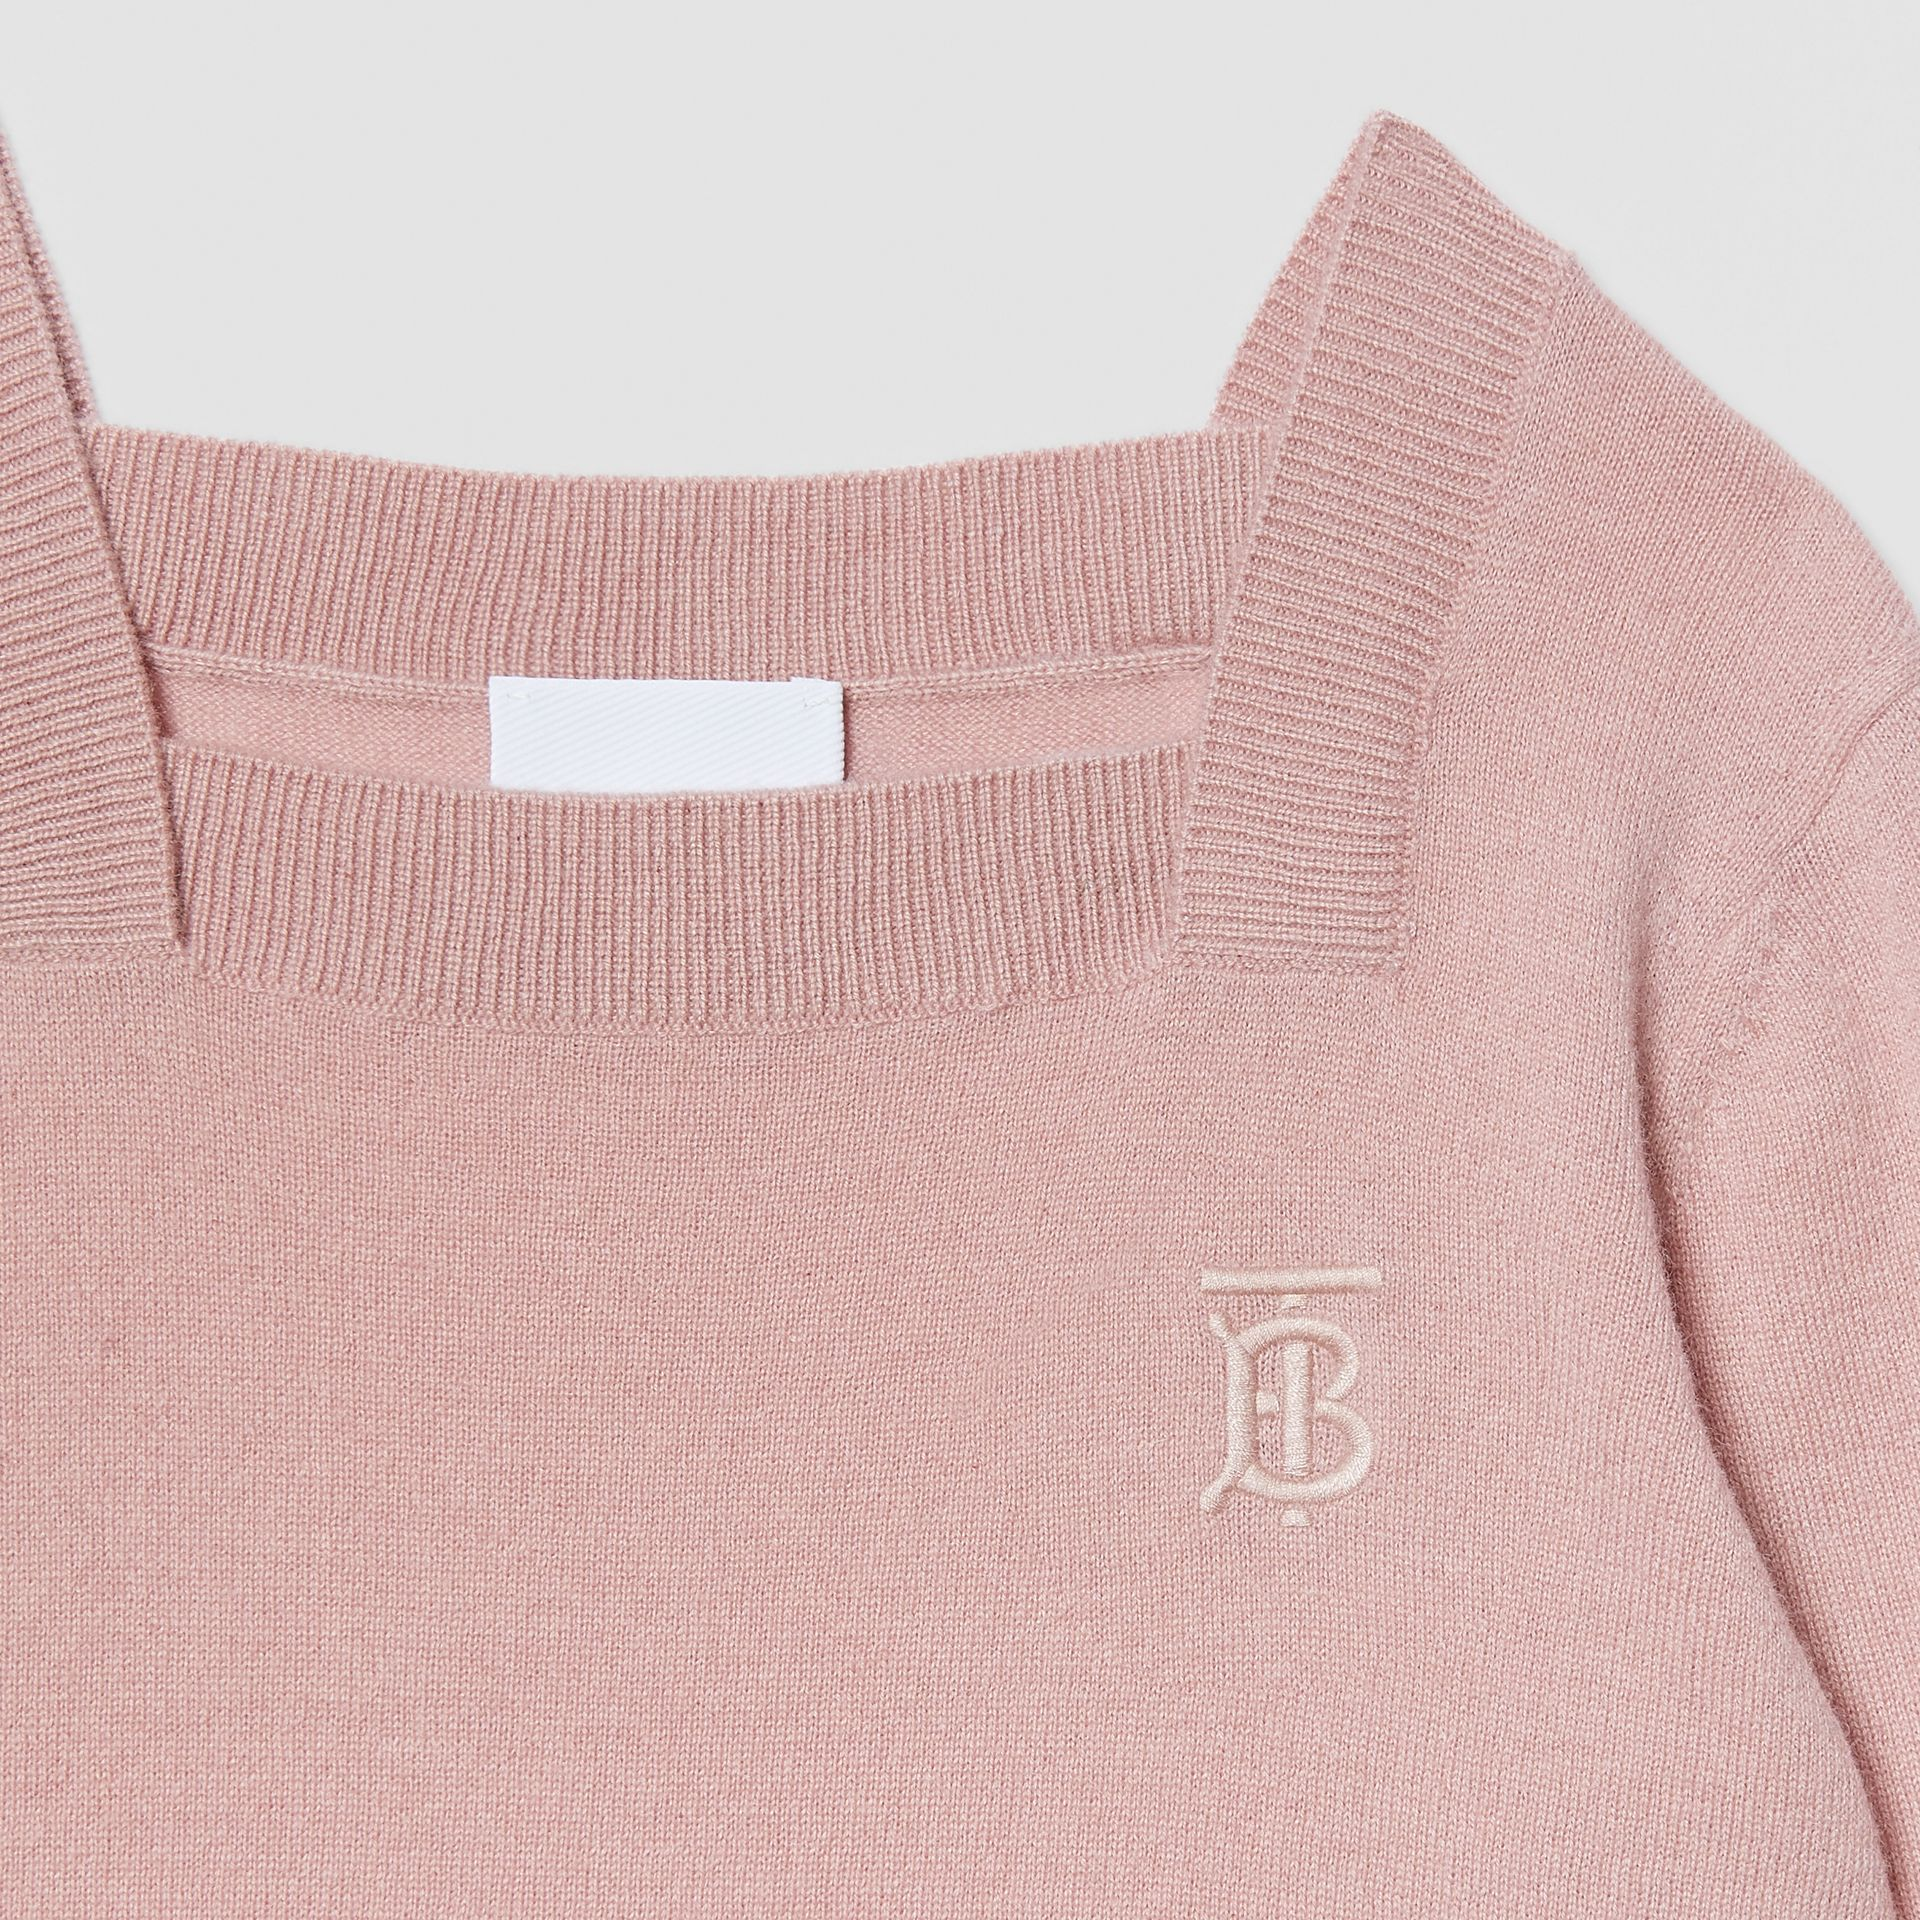 Monogram Motif Cashmere Sweater in Lavender Pink | Burberry United Kingdom - gallery image 4